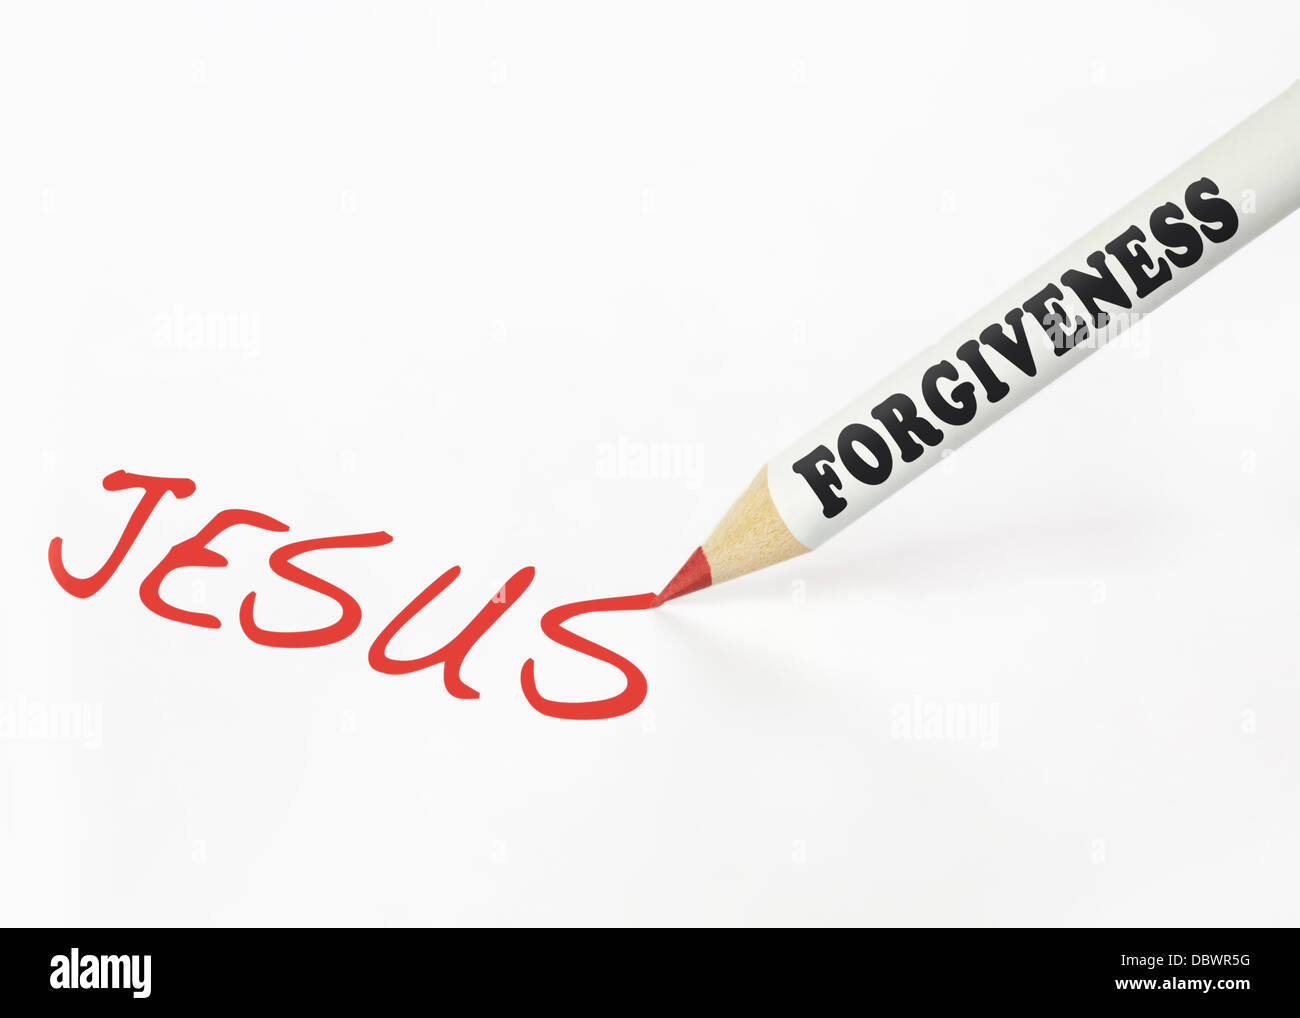 A forgiveness labeled pencil writing the word Jesus - Stock Image